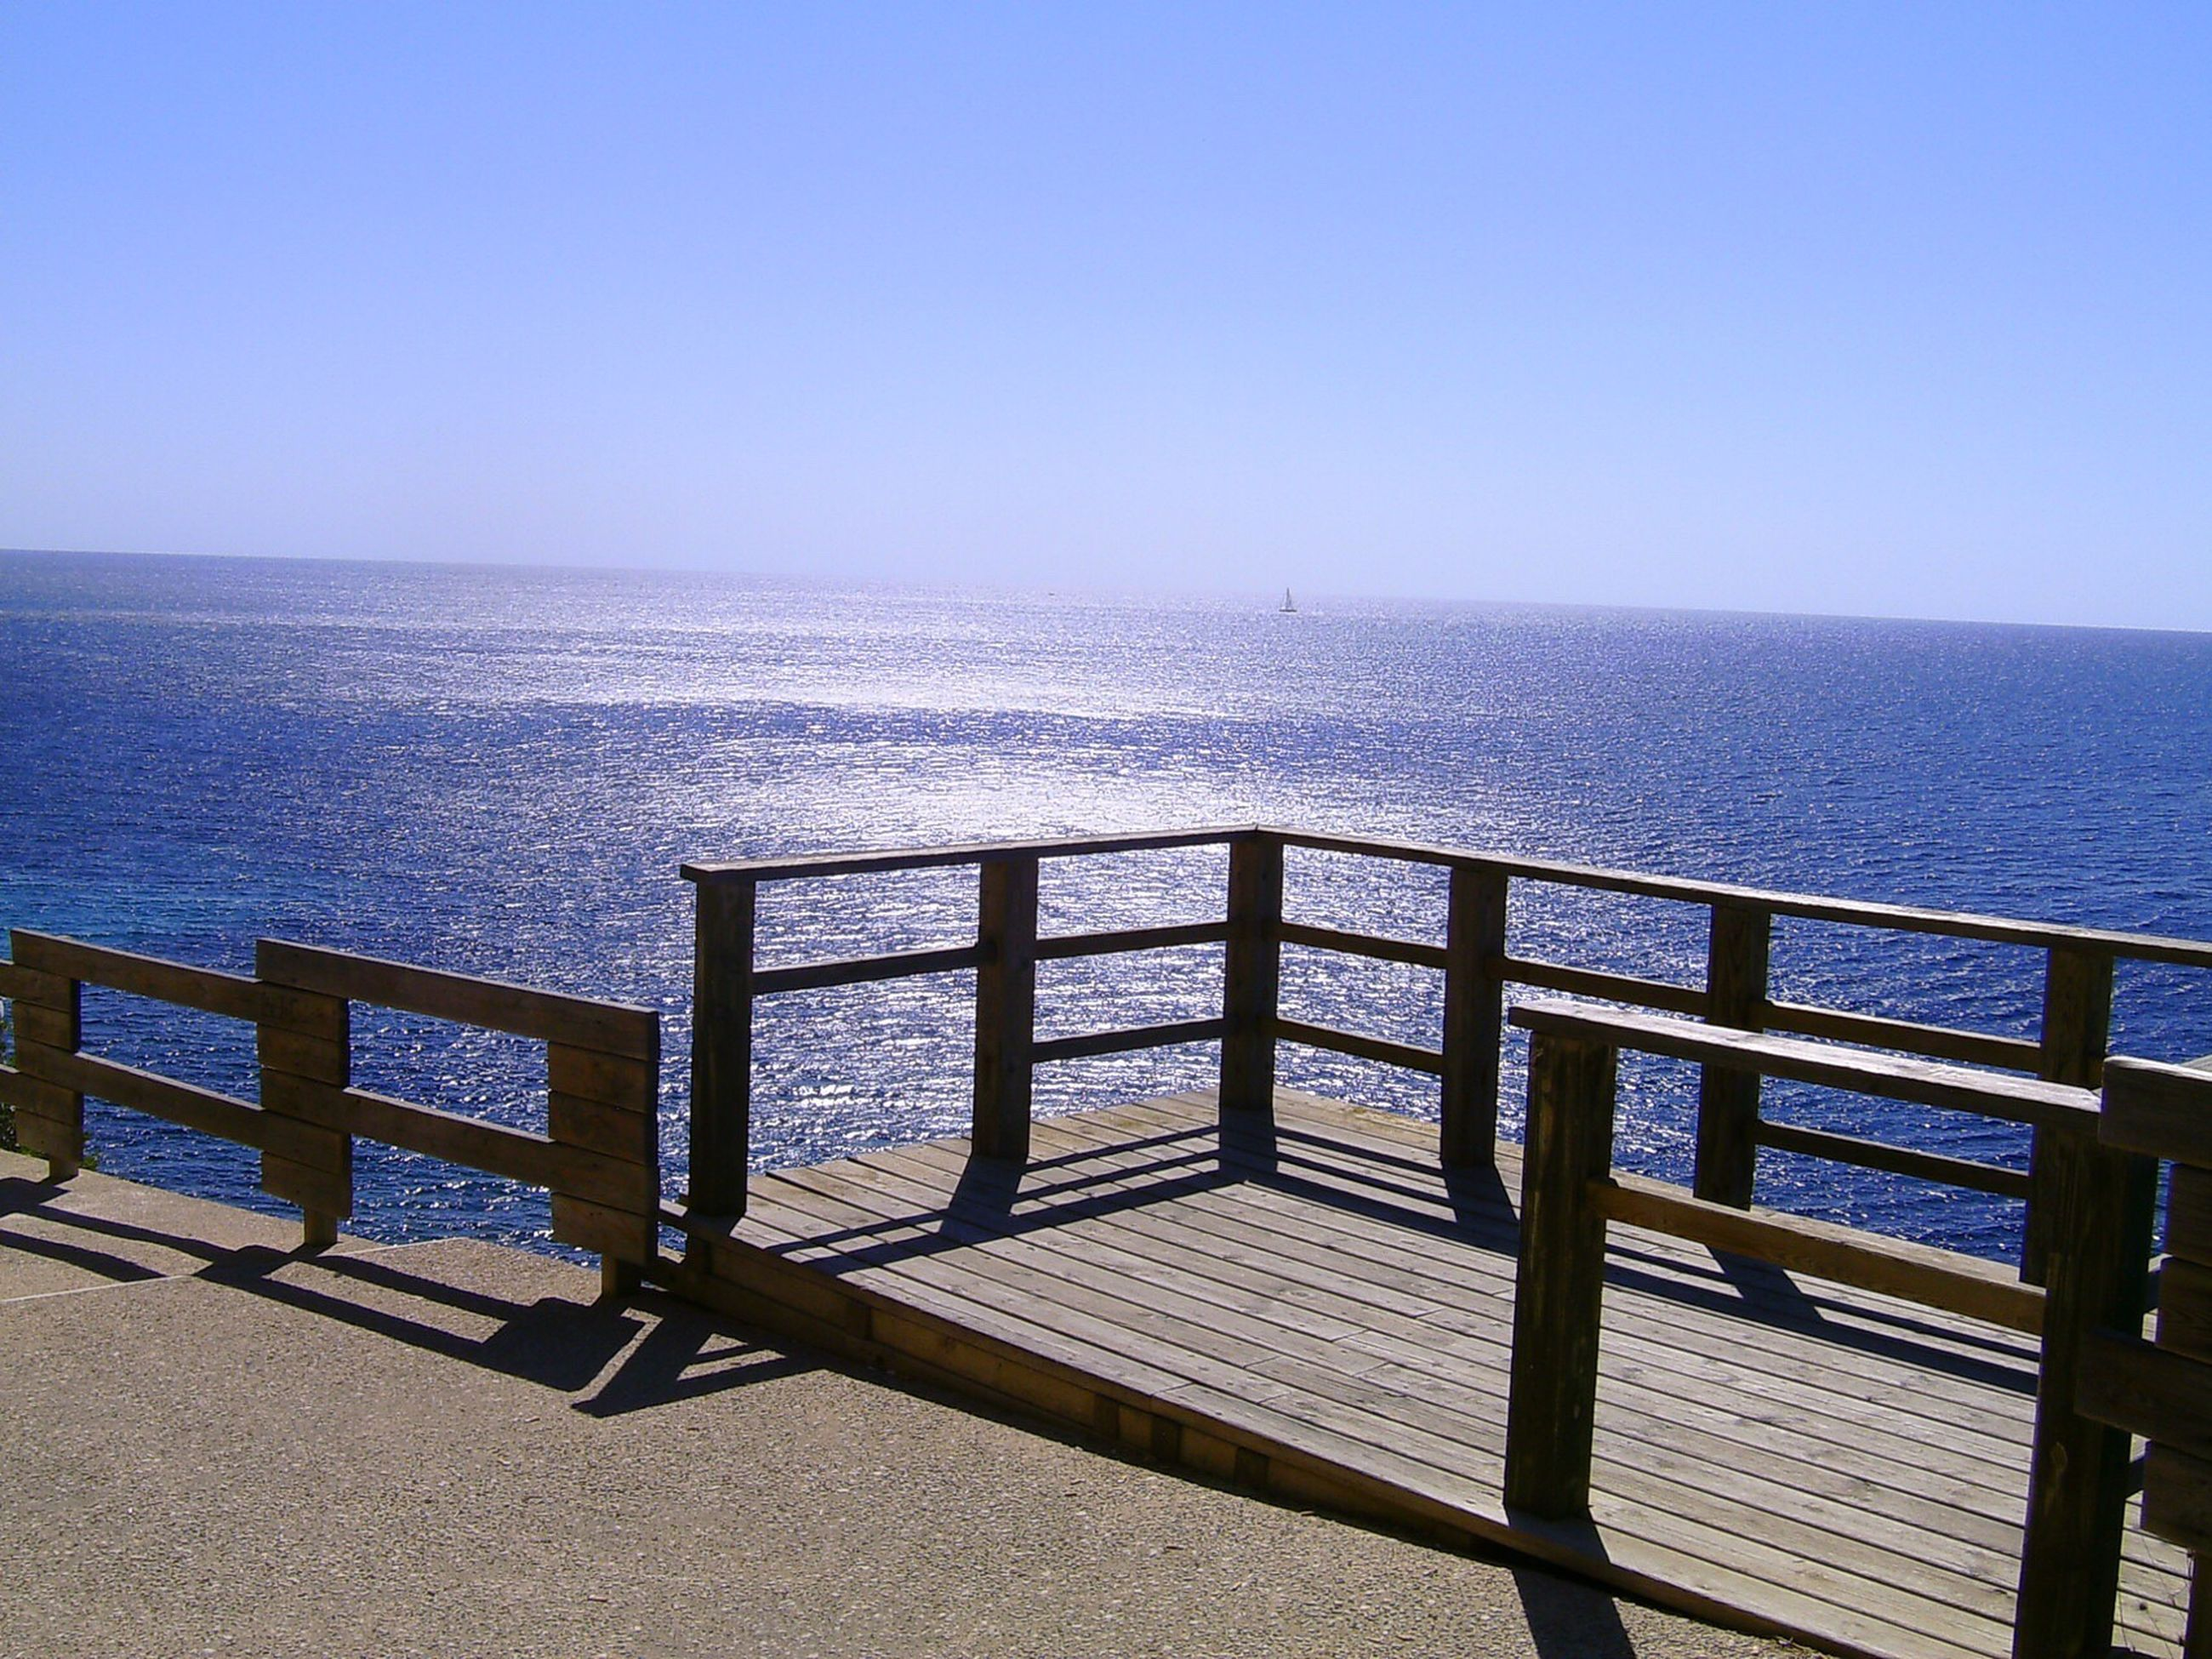 water, sea, railing, scenics, nature, clear sky, horizon over water, beauty in nature, outdoors, day, no people, tranquility, sky